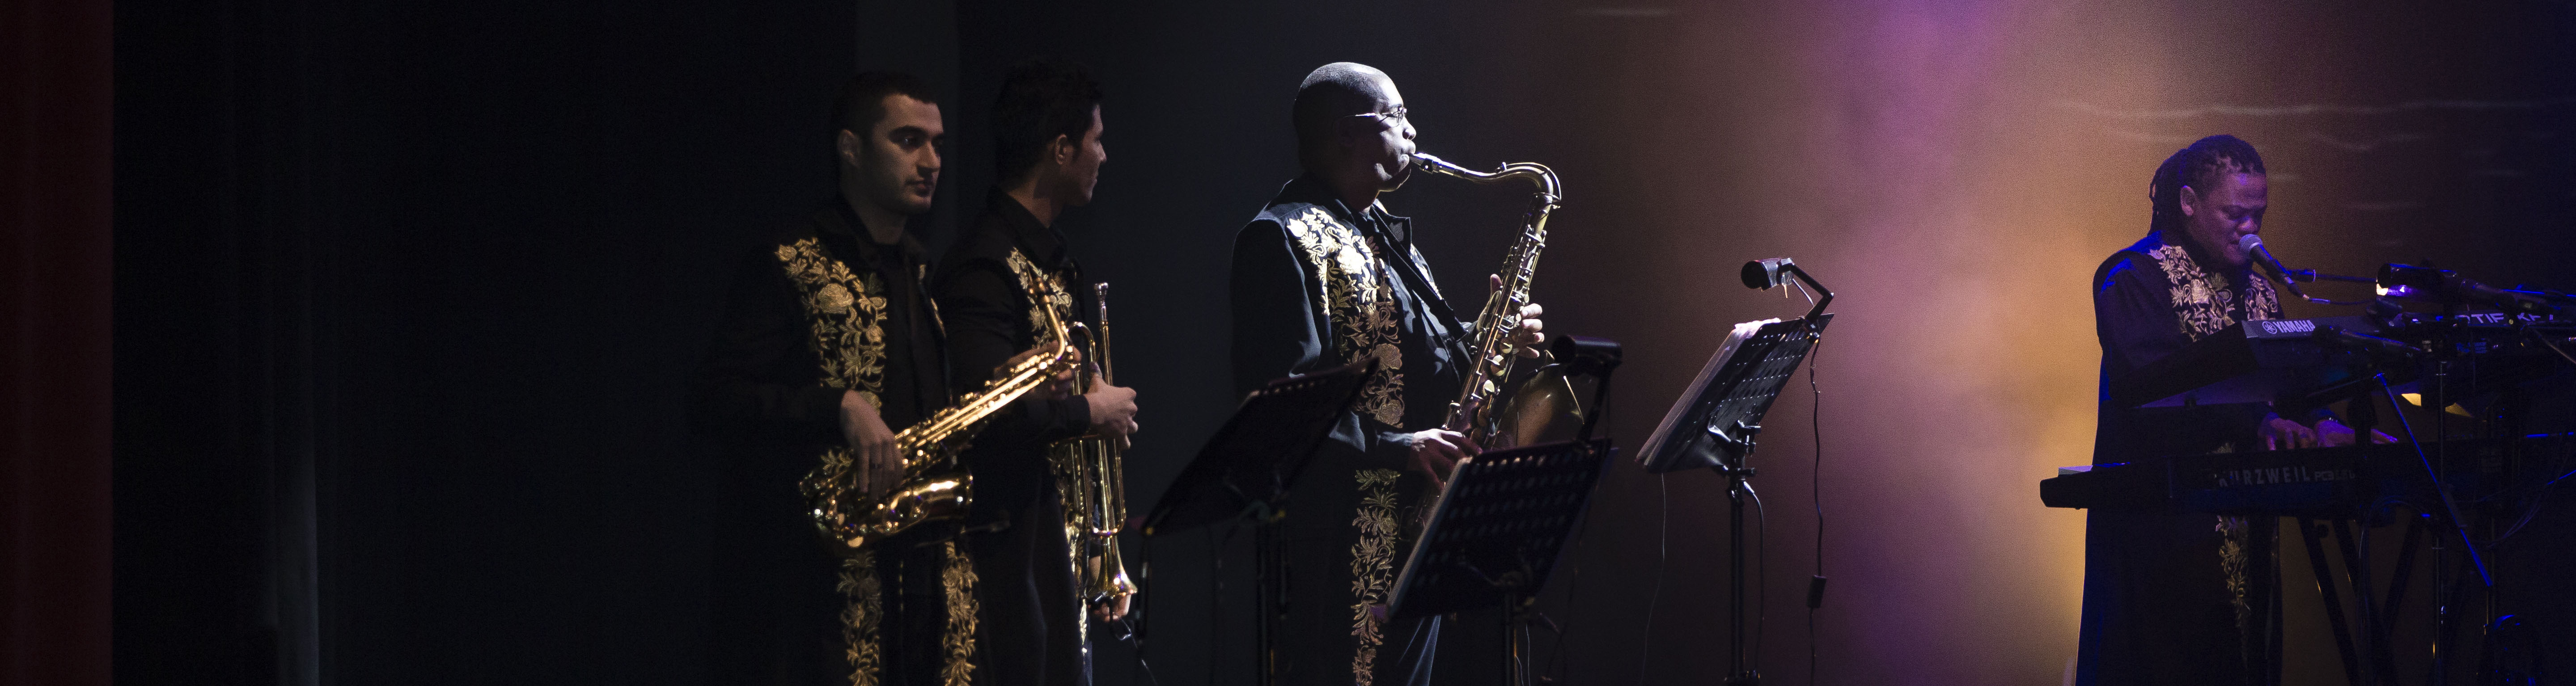 Event – Sax player